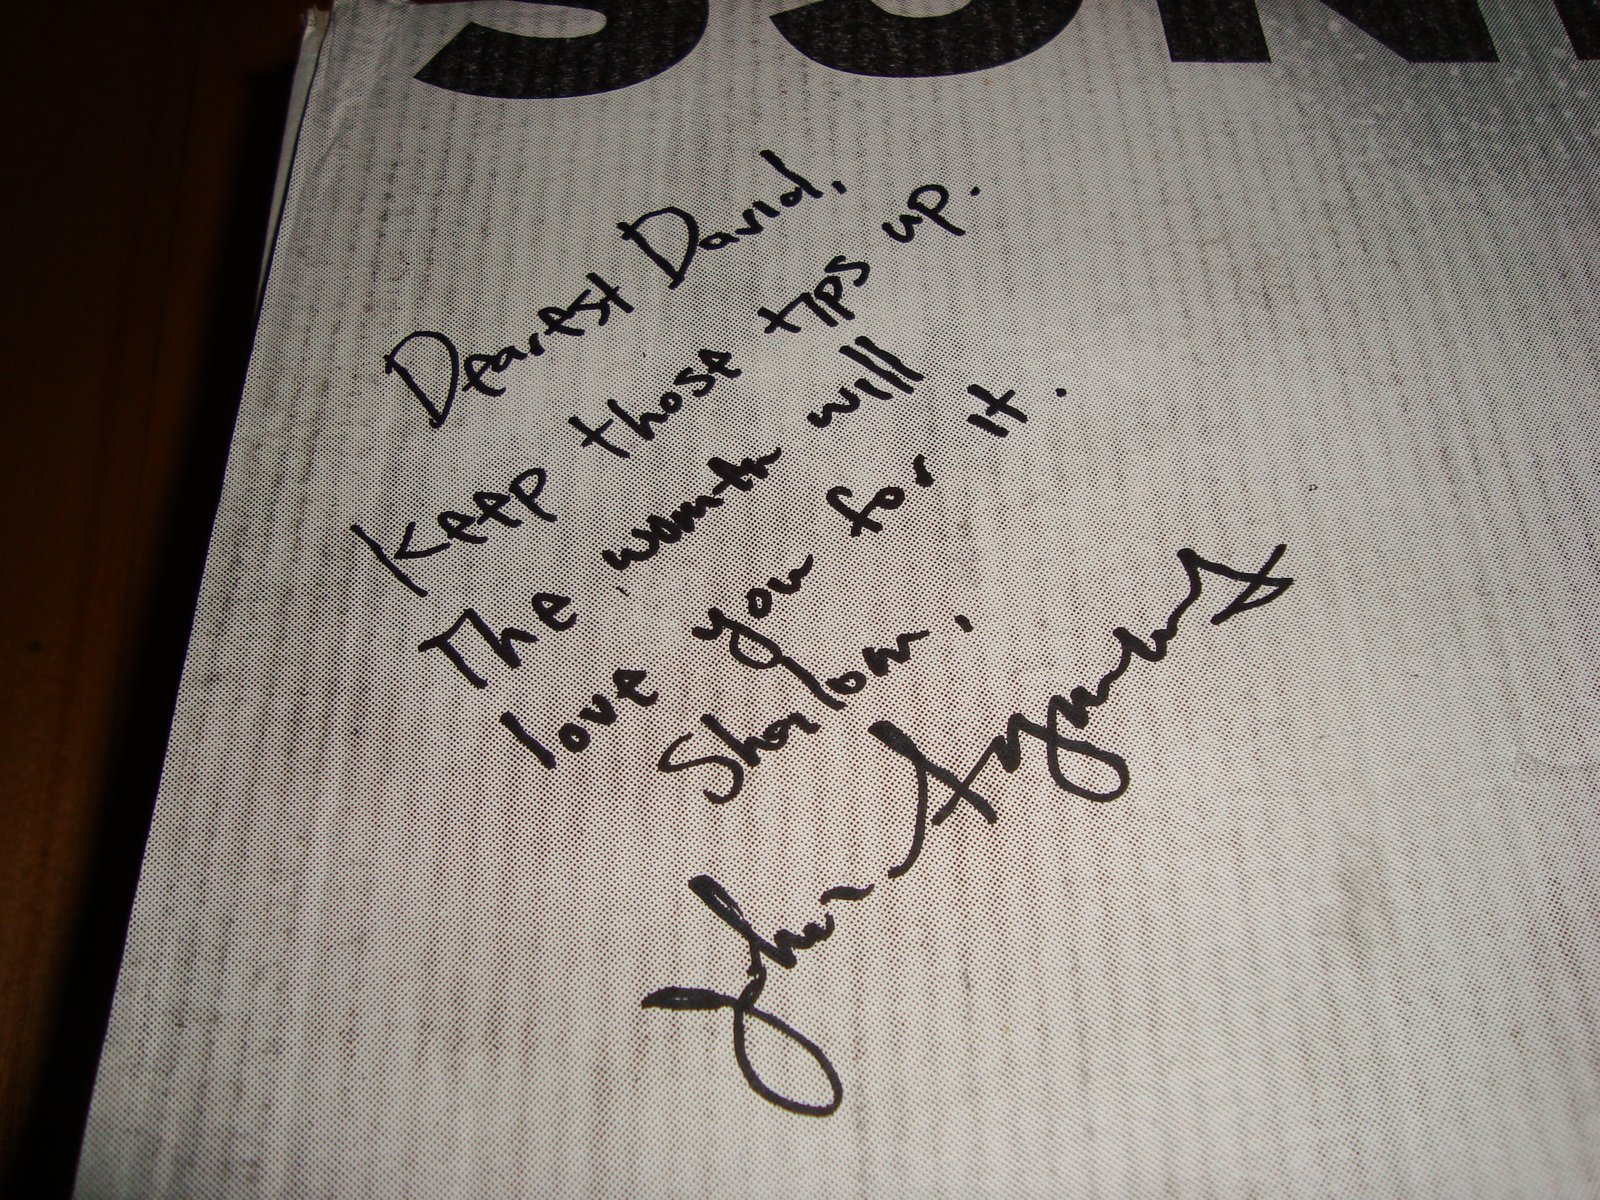 Signed by symms